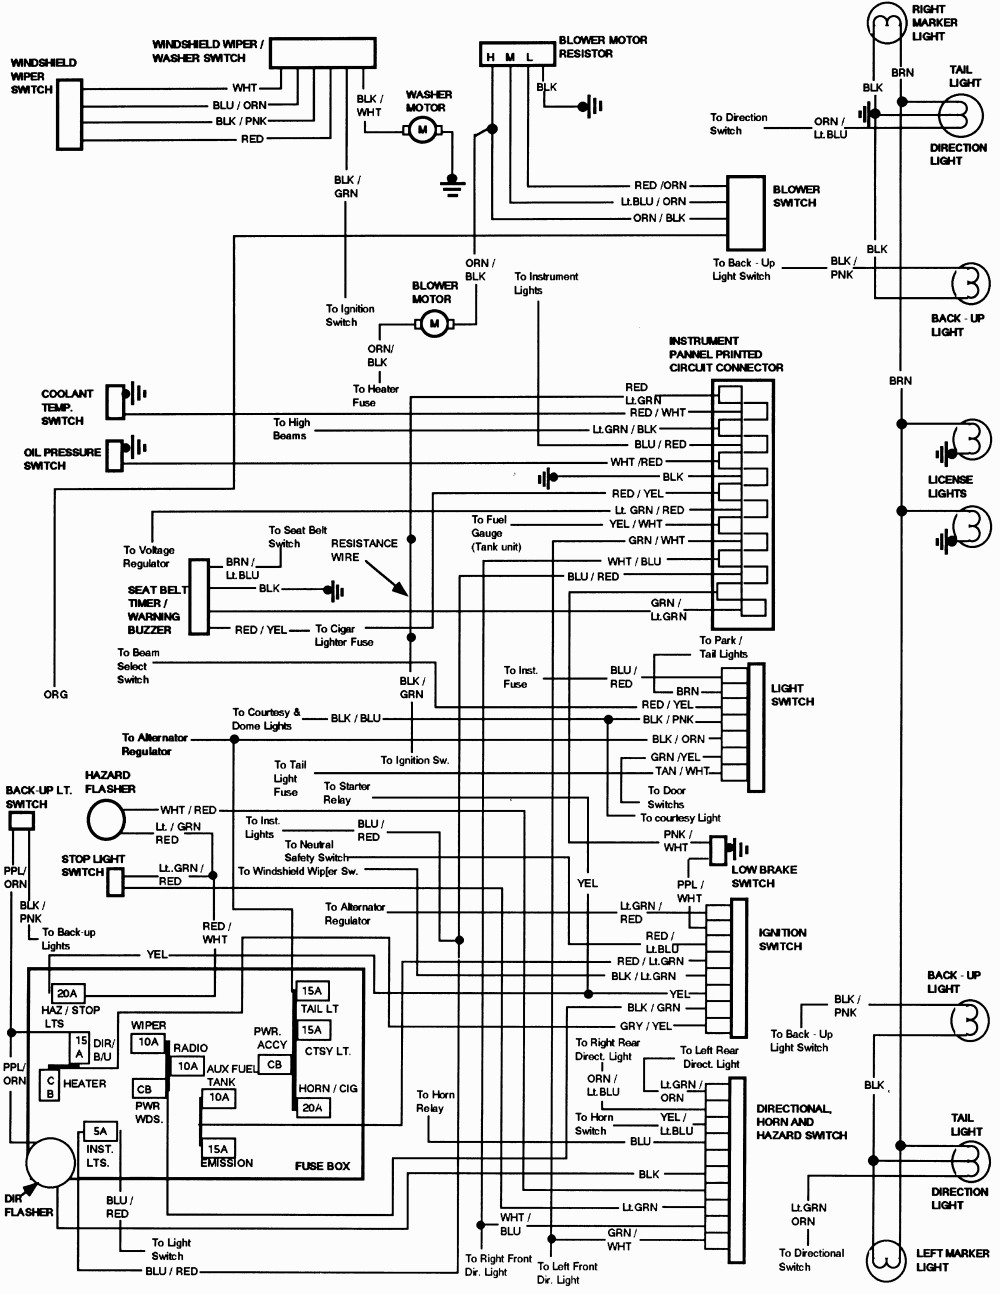 wiring diagram for 1995 ford f150 stereo wiring diagram for 1995 ford mustang